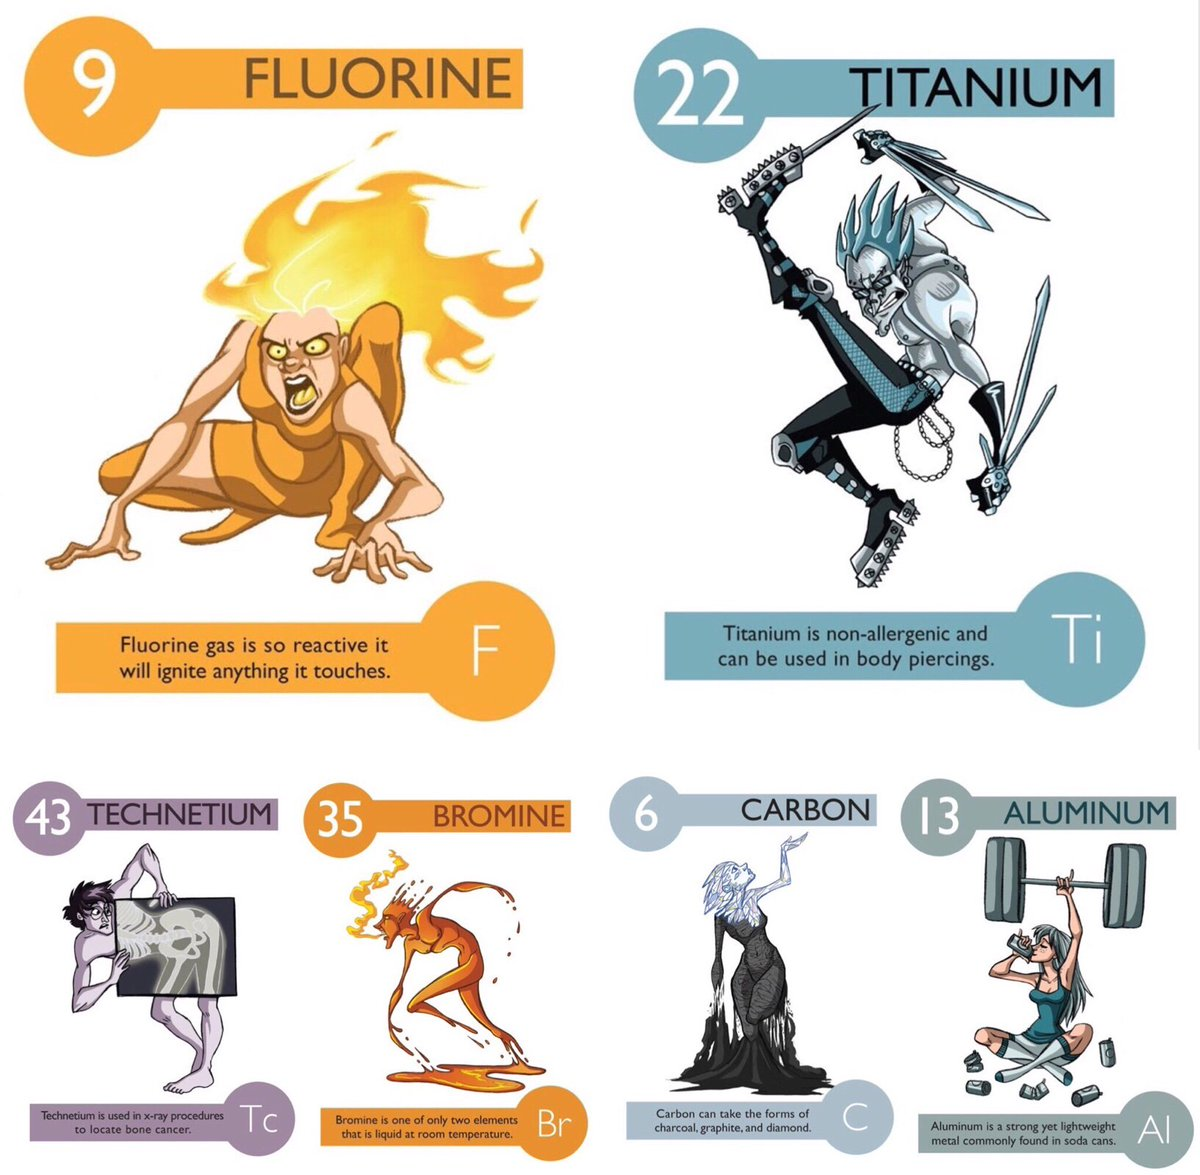 Princess sy on twitter an artist has illustrated 112 characters princess sy on twitter an artist has illustrated 112 characters inspired by the periodic table science chemistry httpstzghunf1wqd gamestrikefo Image collections